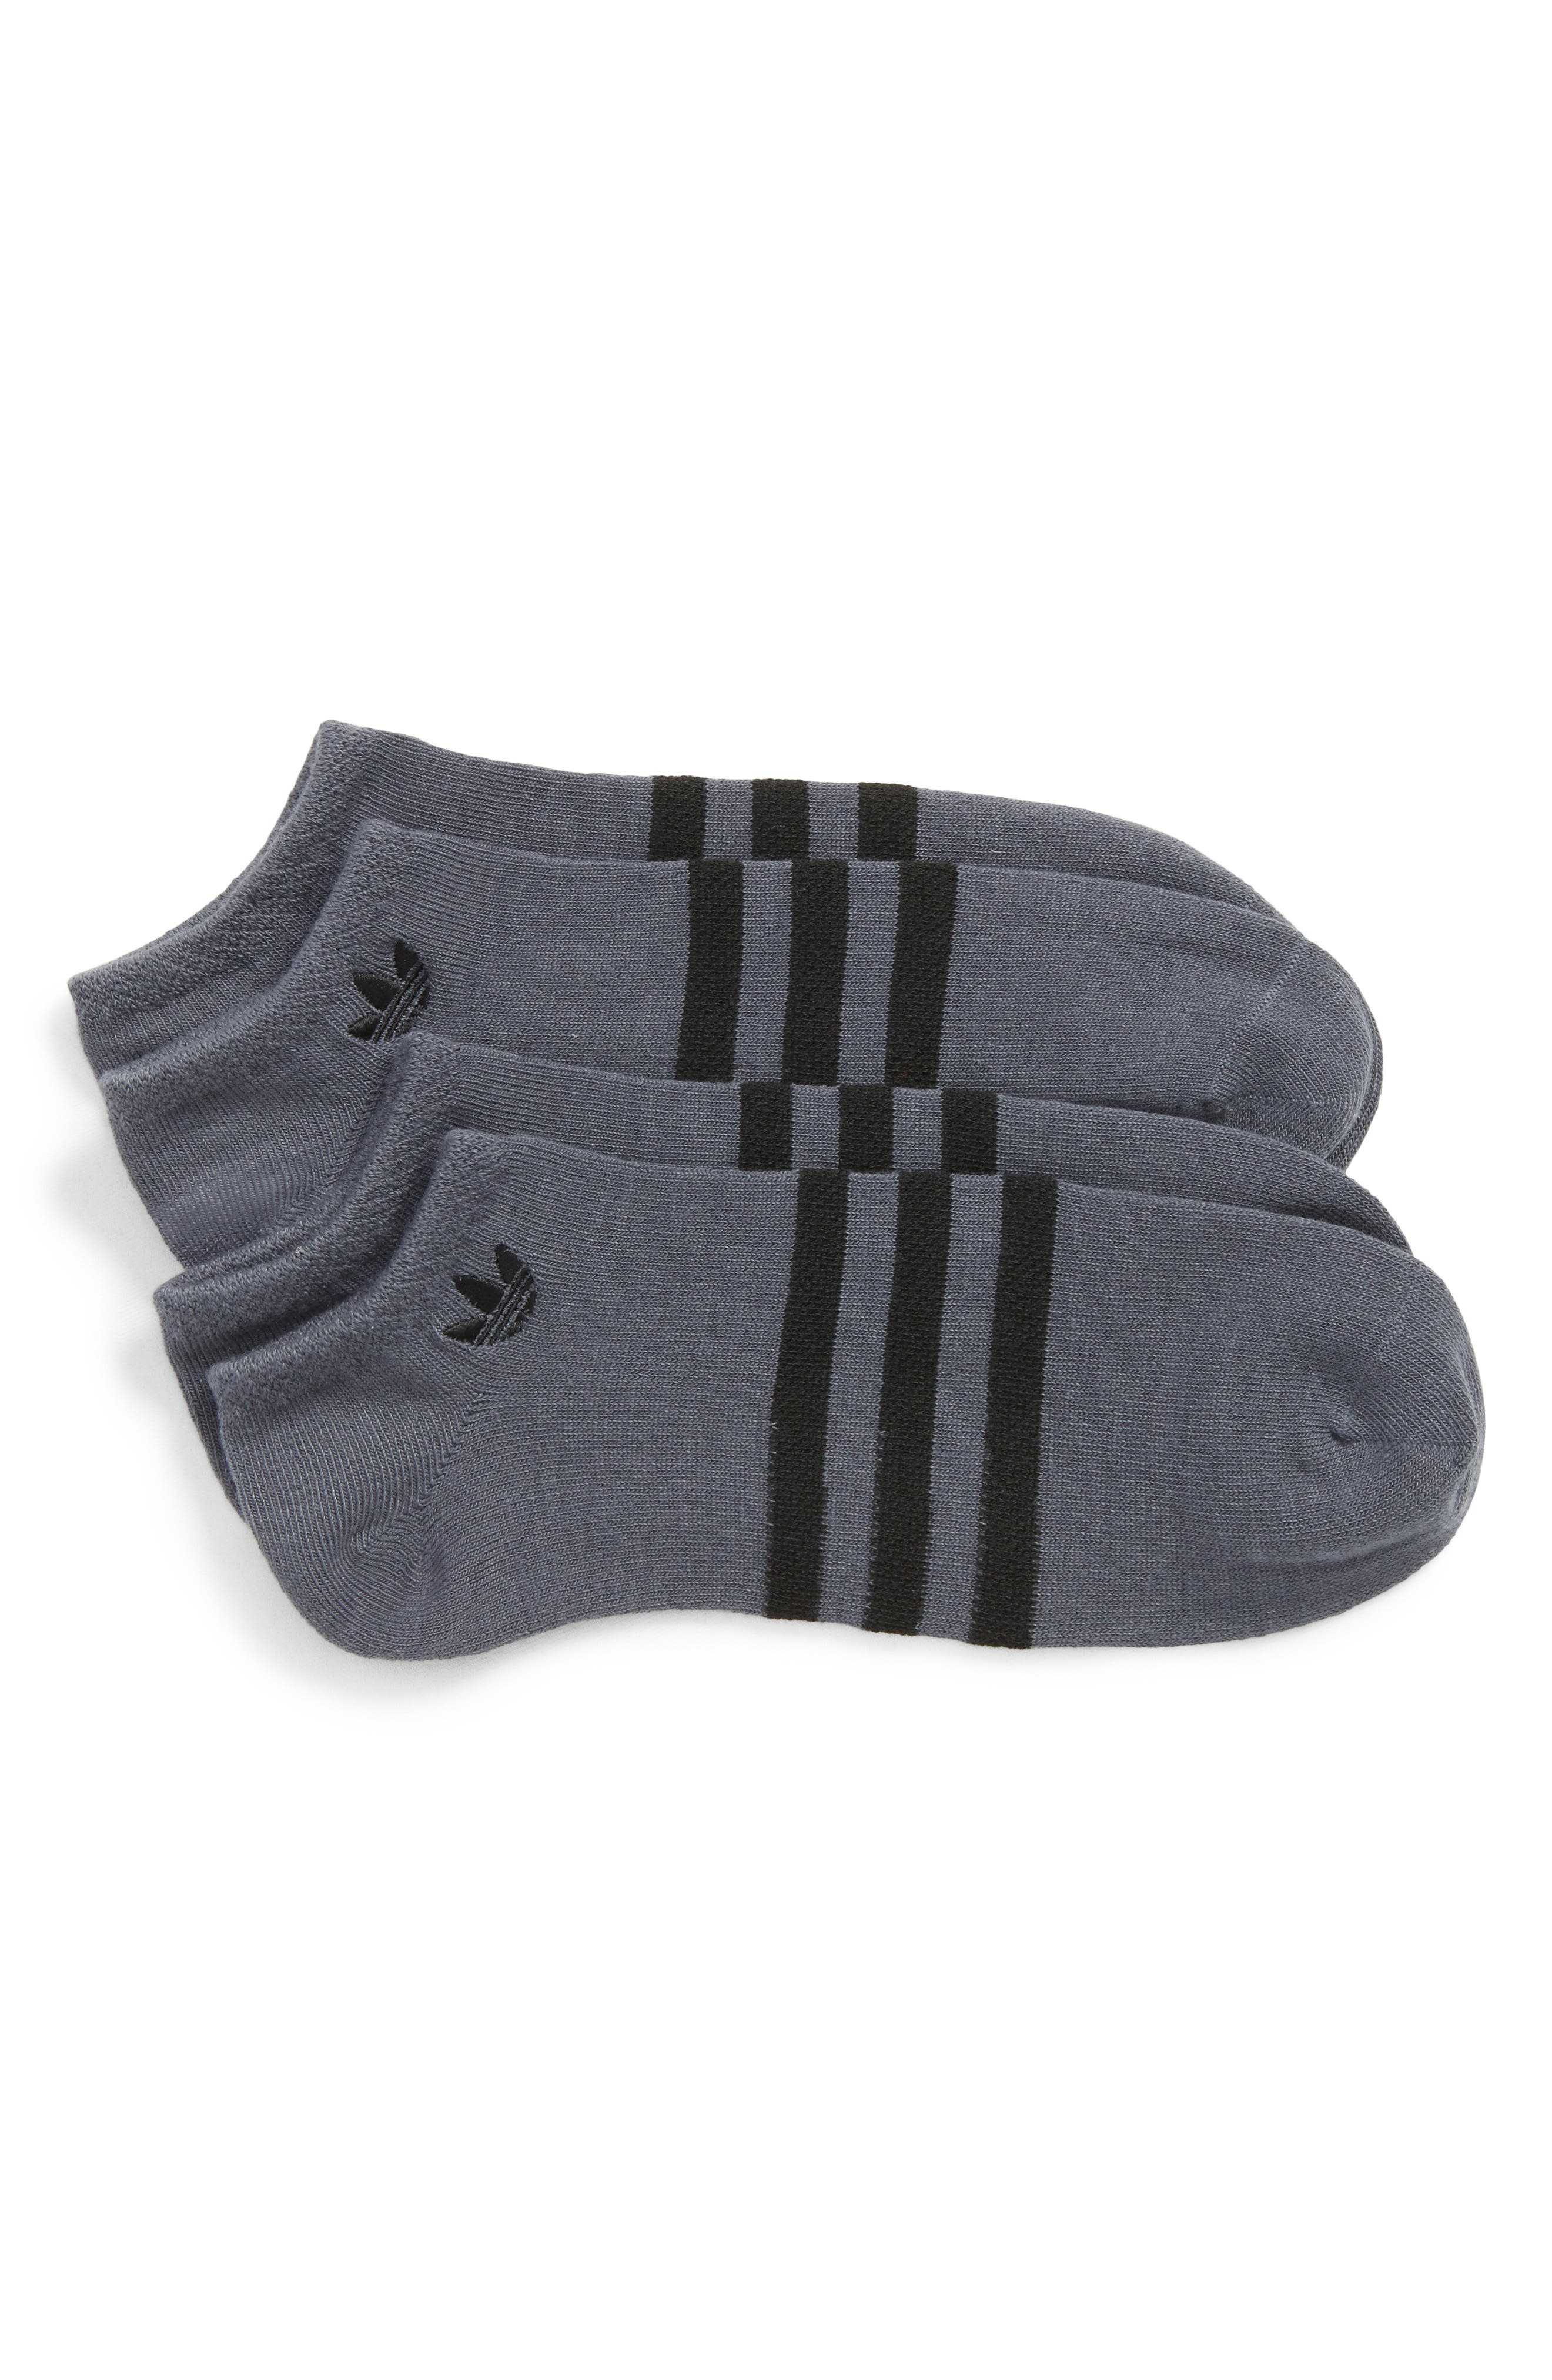 Alternate Image 1 Selected - adidas Originals 2-Pack No-Show Socks